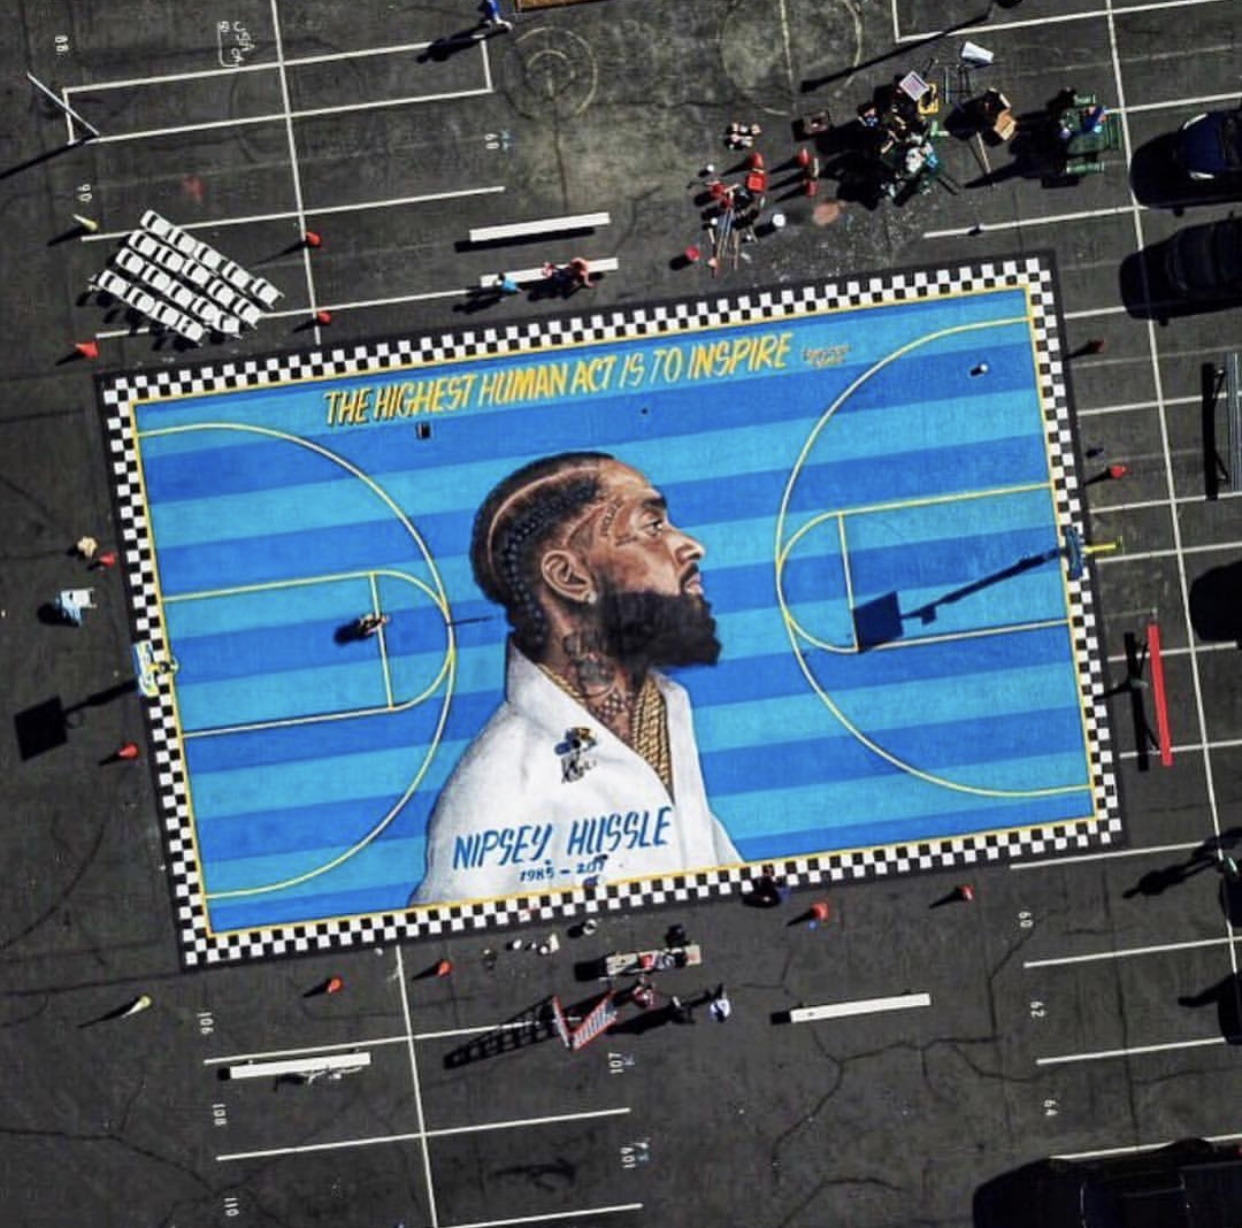 """The Marathon Continues"" – a basketball court mural unveiled to the public in the Crenshaw neighborhood of Los Angeles on April 14 by Nipsey Hussle's family. The mural, painted by artist Gustavo Zermano is located within blocks away from his memorial."